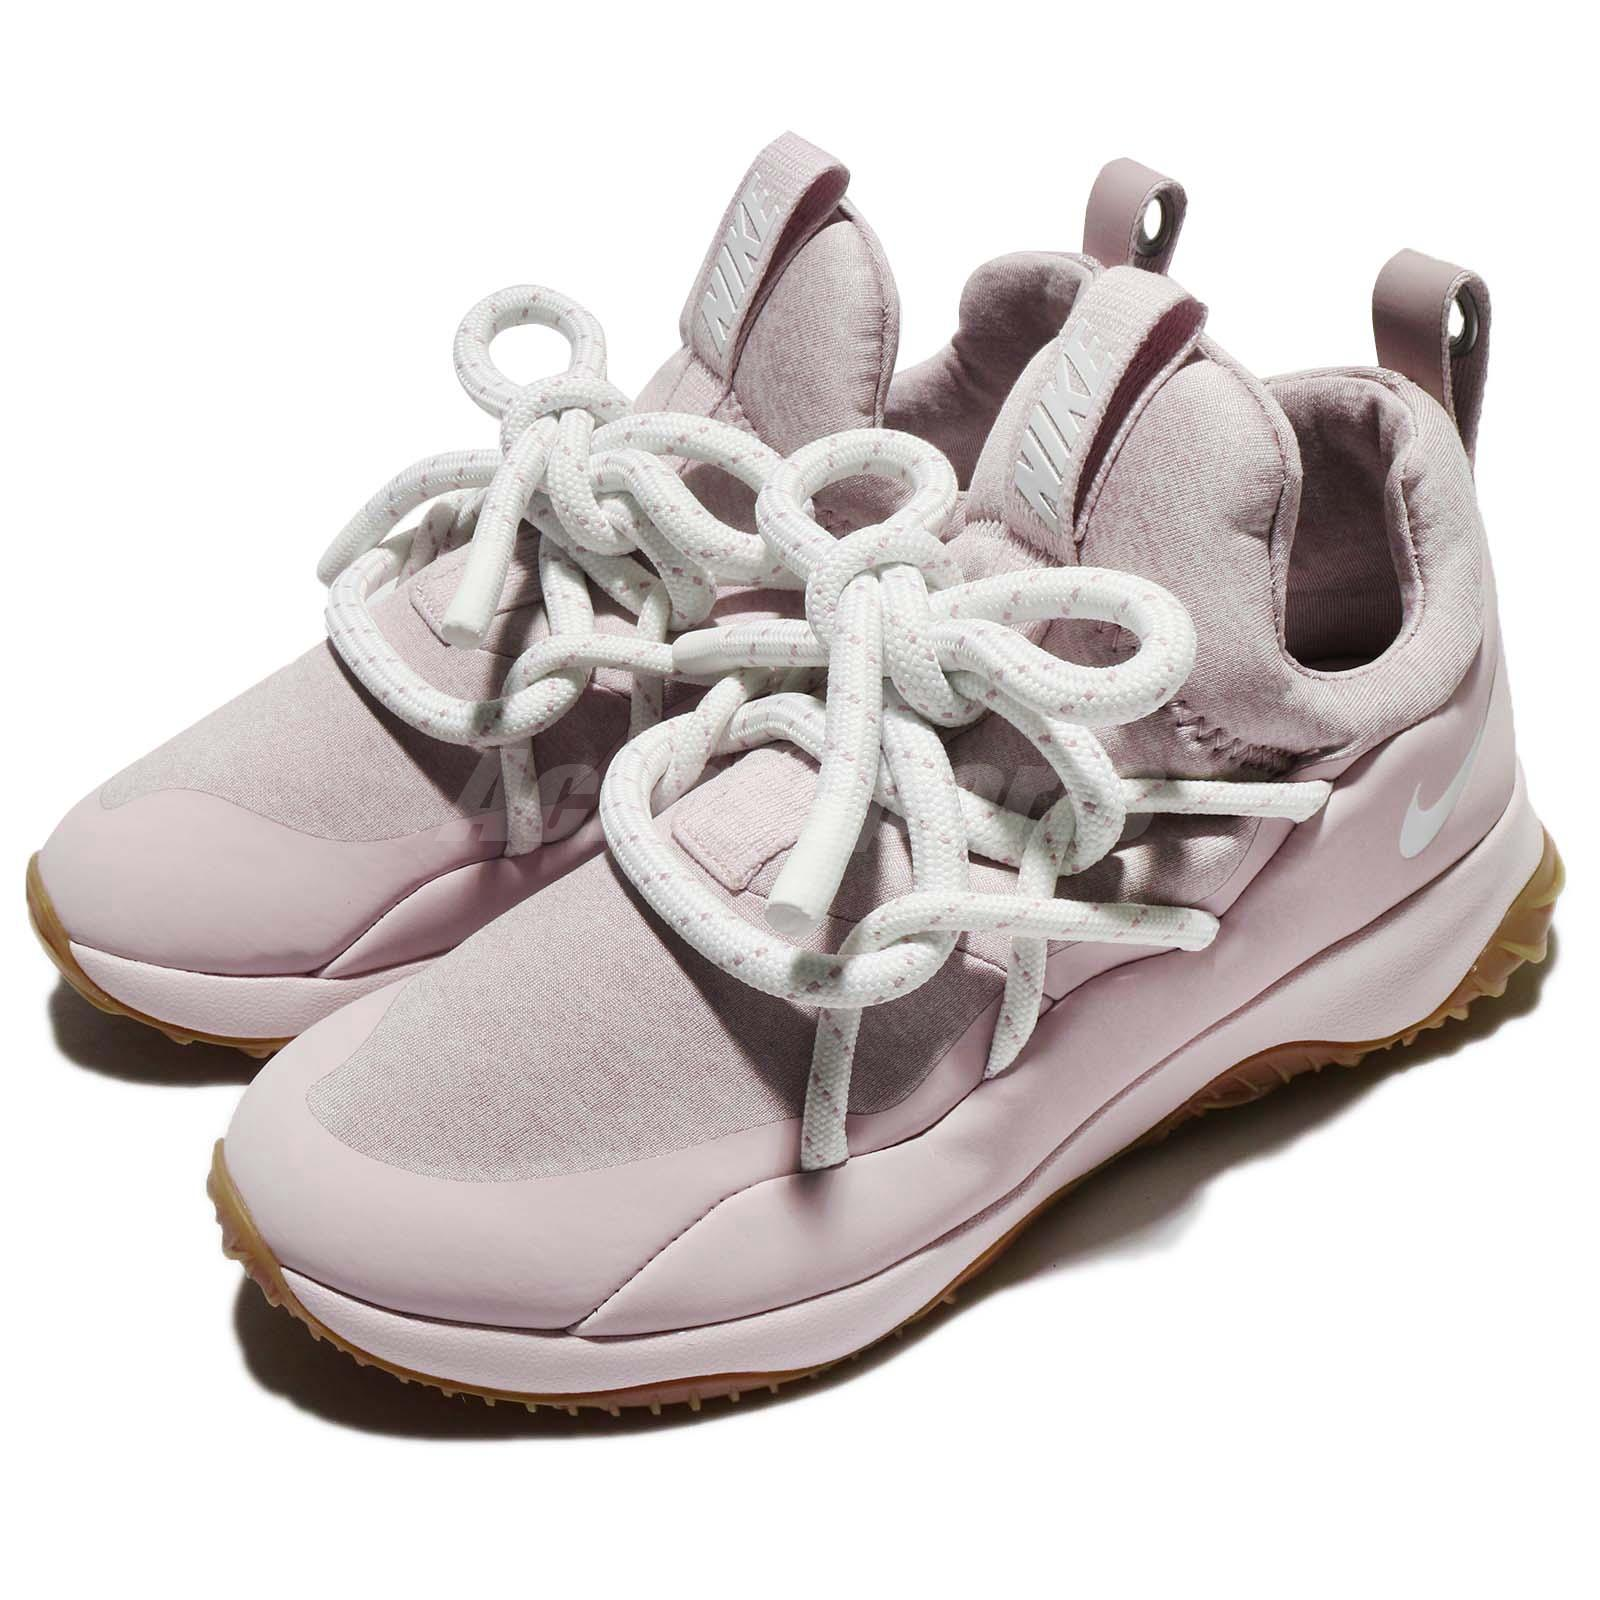 Nike Wmns City Loop Particle Rose Pink Gum Women Casual Shoes Sneaker AA1097601